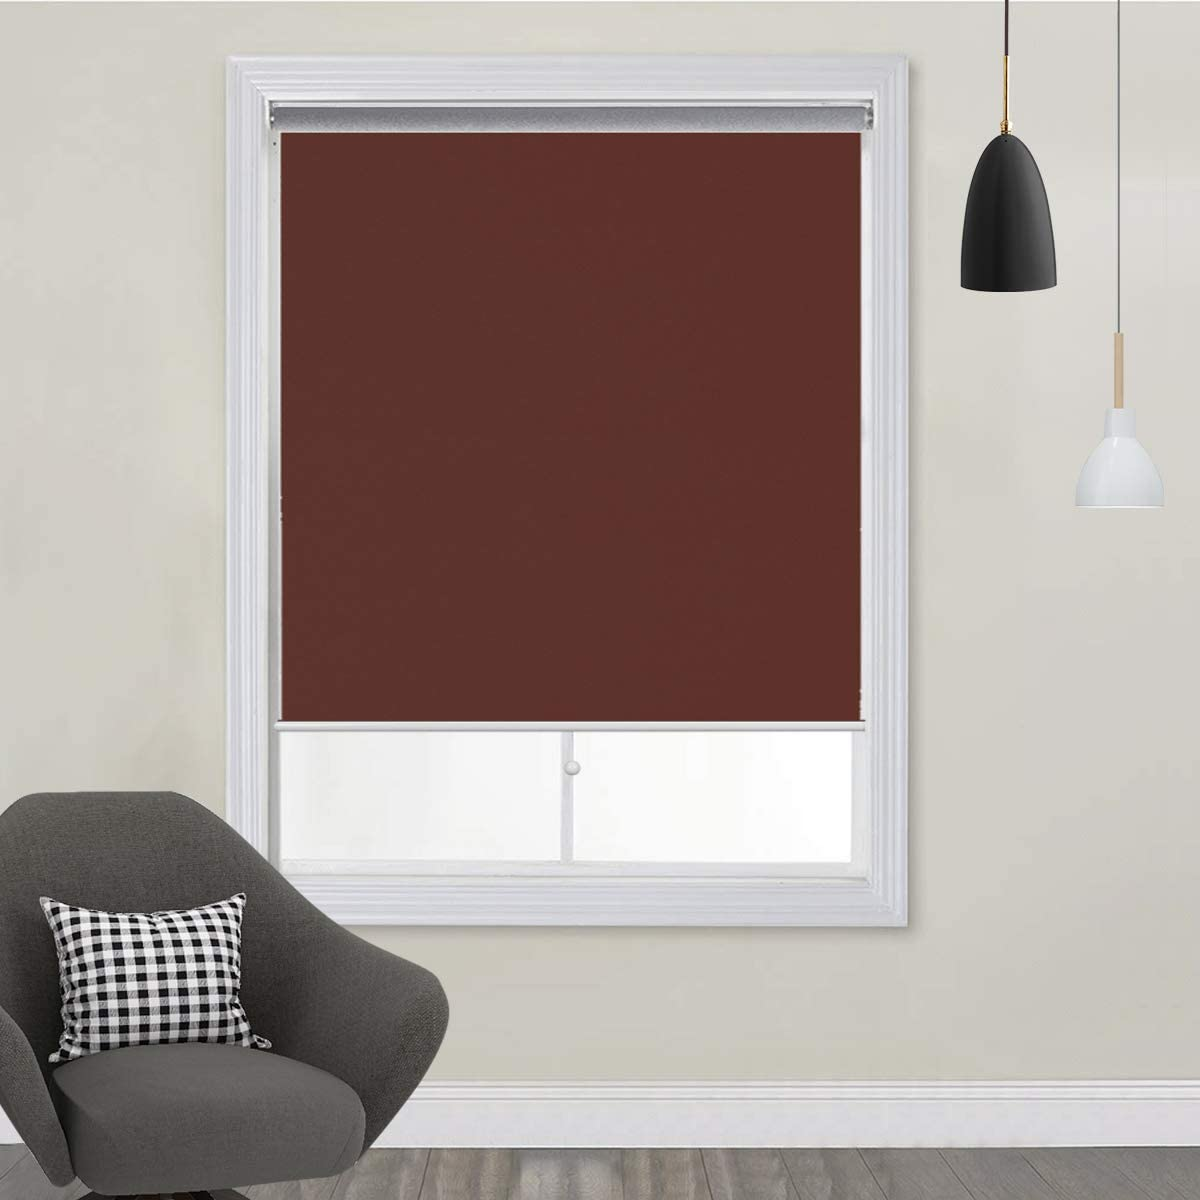 TFSKY Blackout Shades for Bedroom Outdoor Cordless Roller Blinds and Shades for Windows Blackout Window Blinds for Indoor Outdoor Use, UV Protection with Spring System Chocolate, 48×72